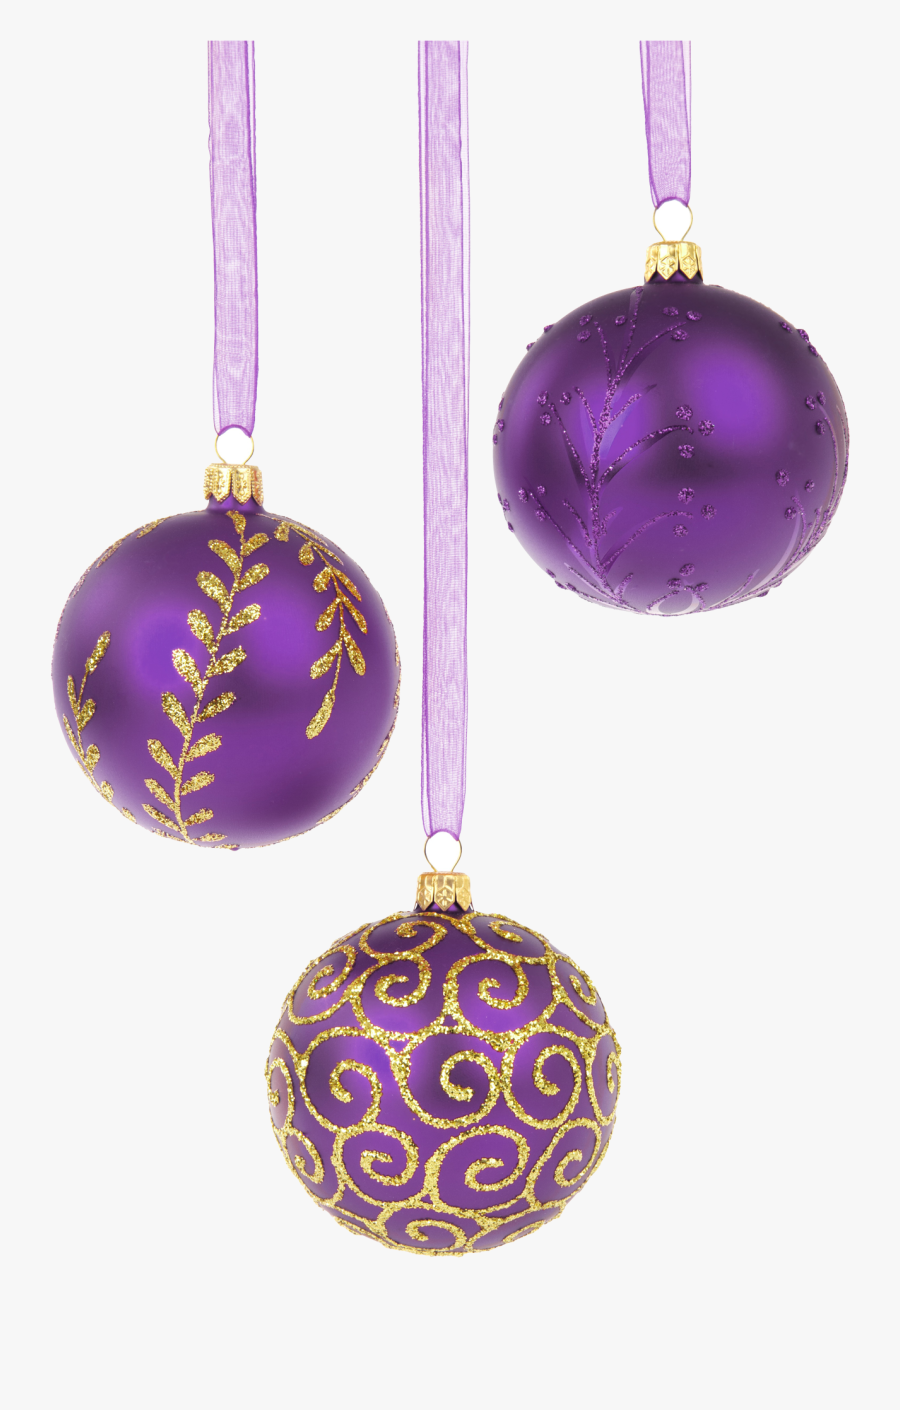 Christmas Decorations With White Background, Transparent Clipart